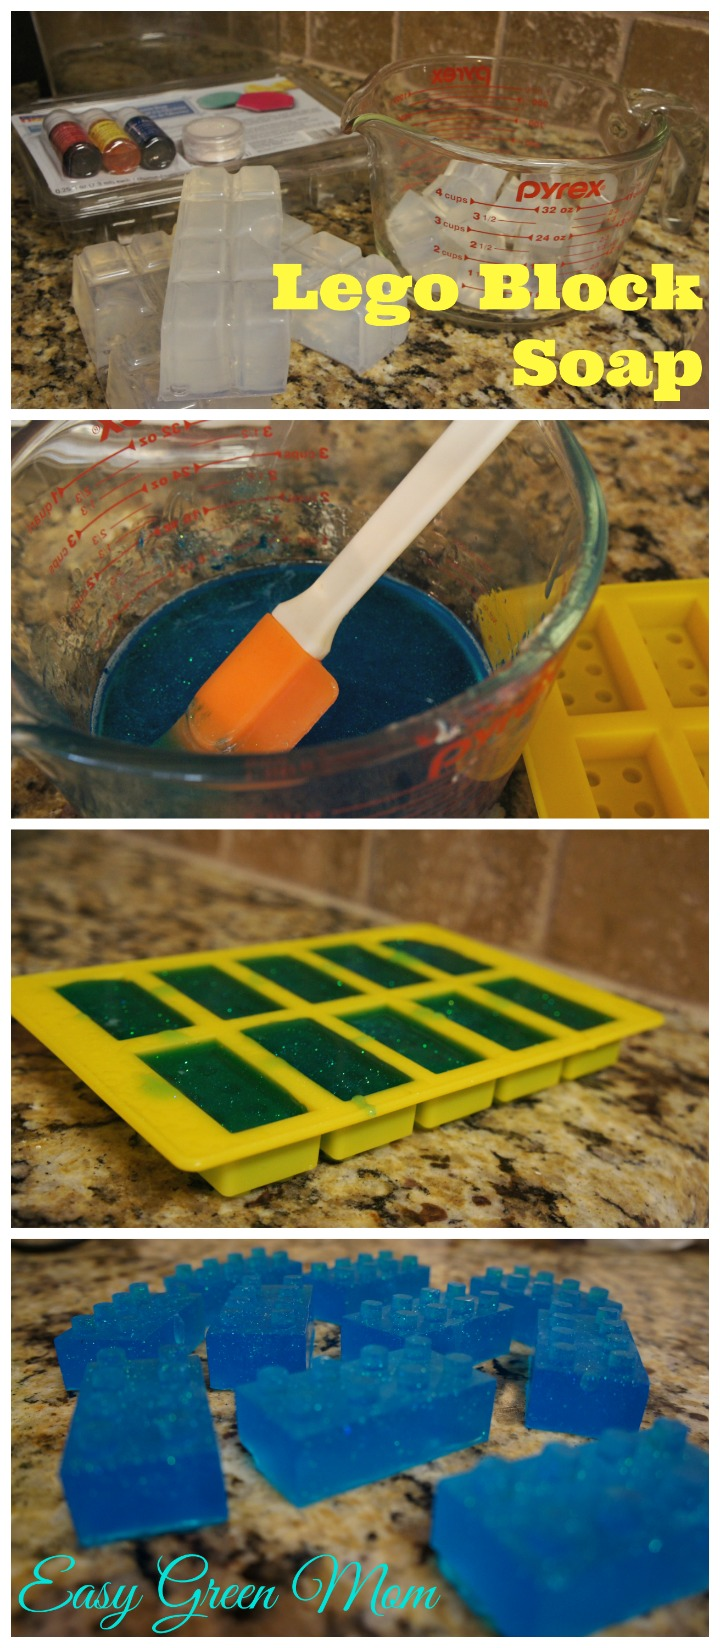 Lego Block Soap for Party Favor Bags